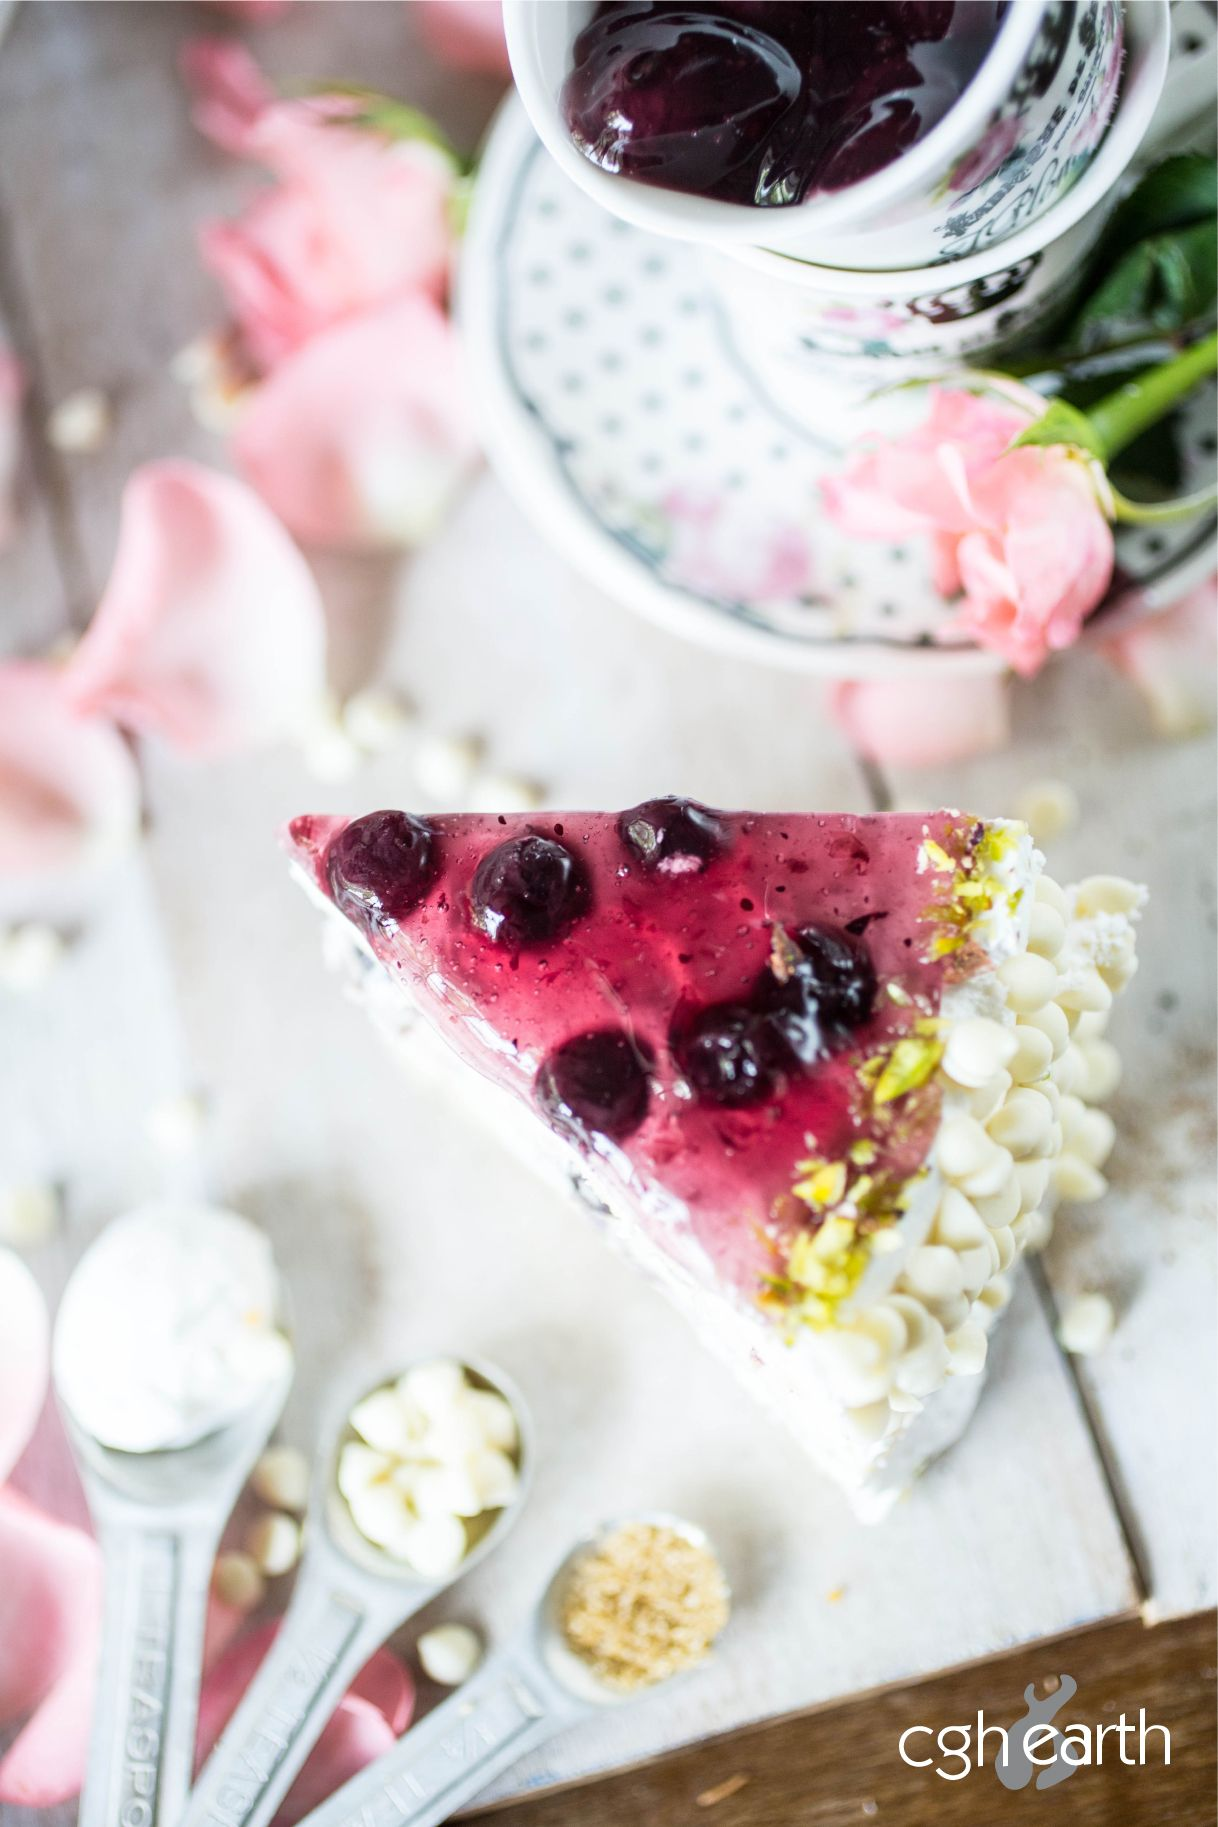 Blueberry Cheesecake Outdoor Catering Gourmet Recipes